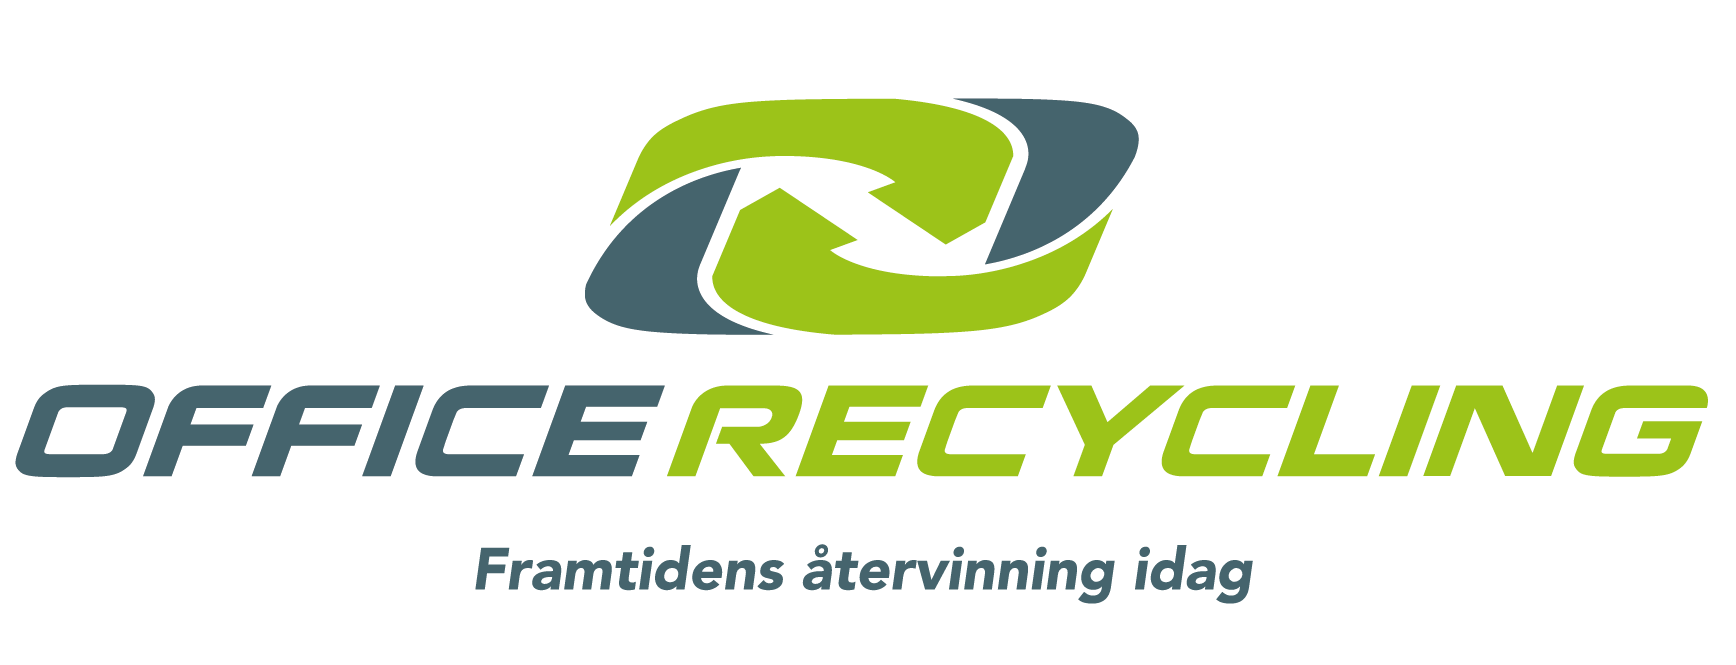 http://officerecycling.se